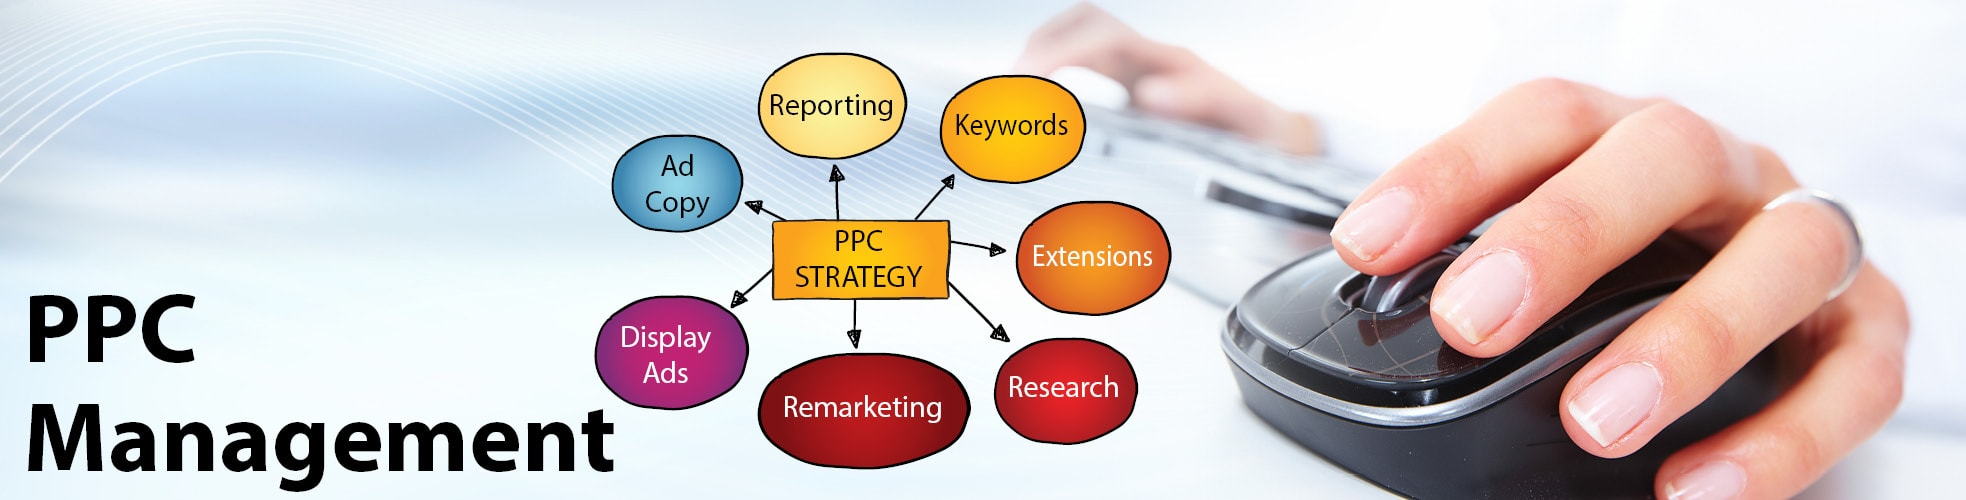 PPC Management for small businesses